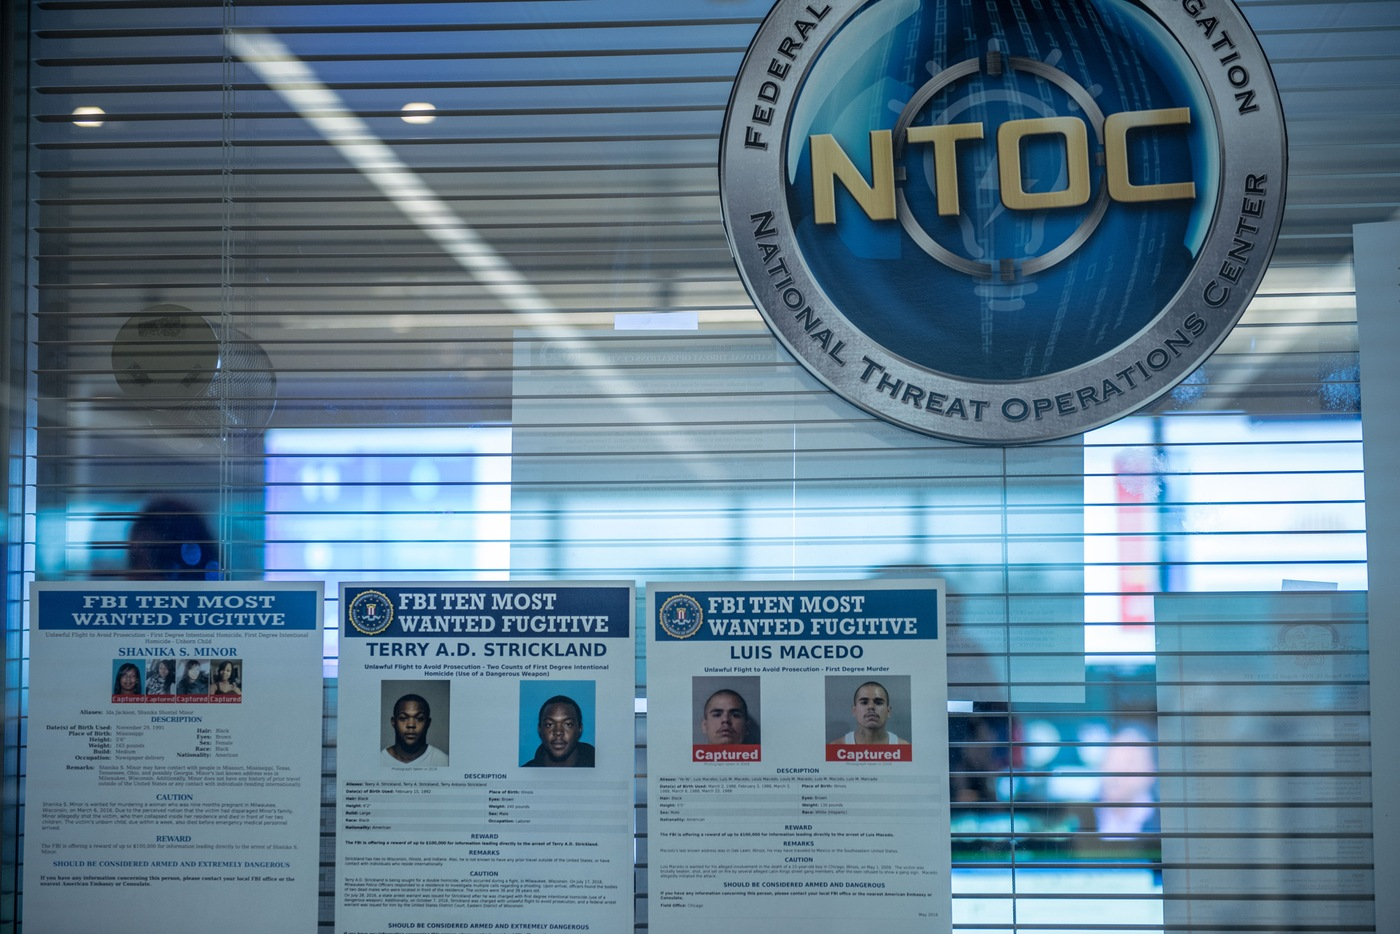 Posters of three of the FBI's Ten Most Wanted Fugitives in a window under the National Threat Operations Center seal.